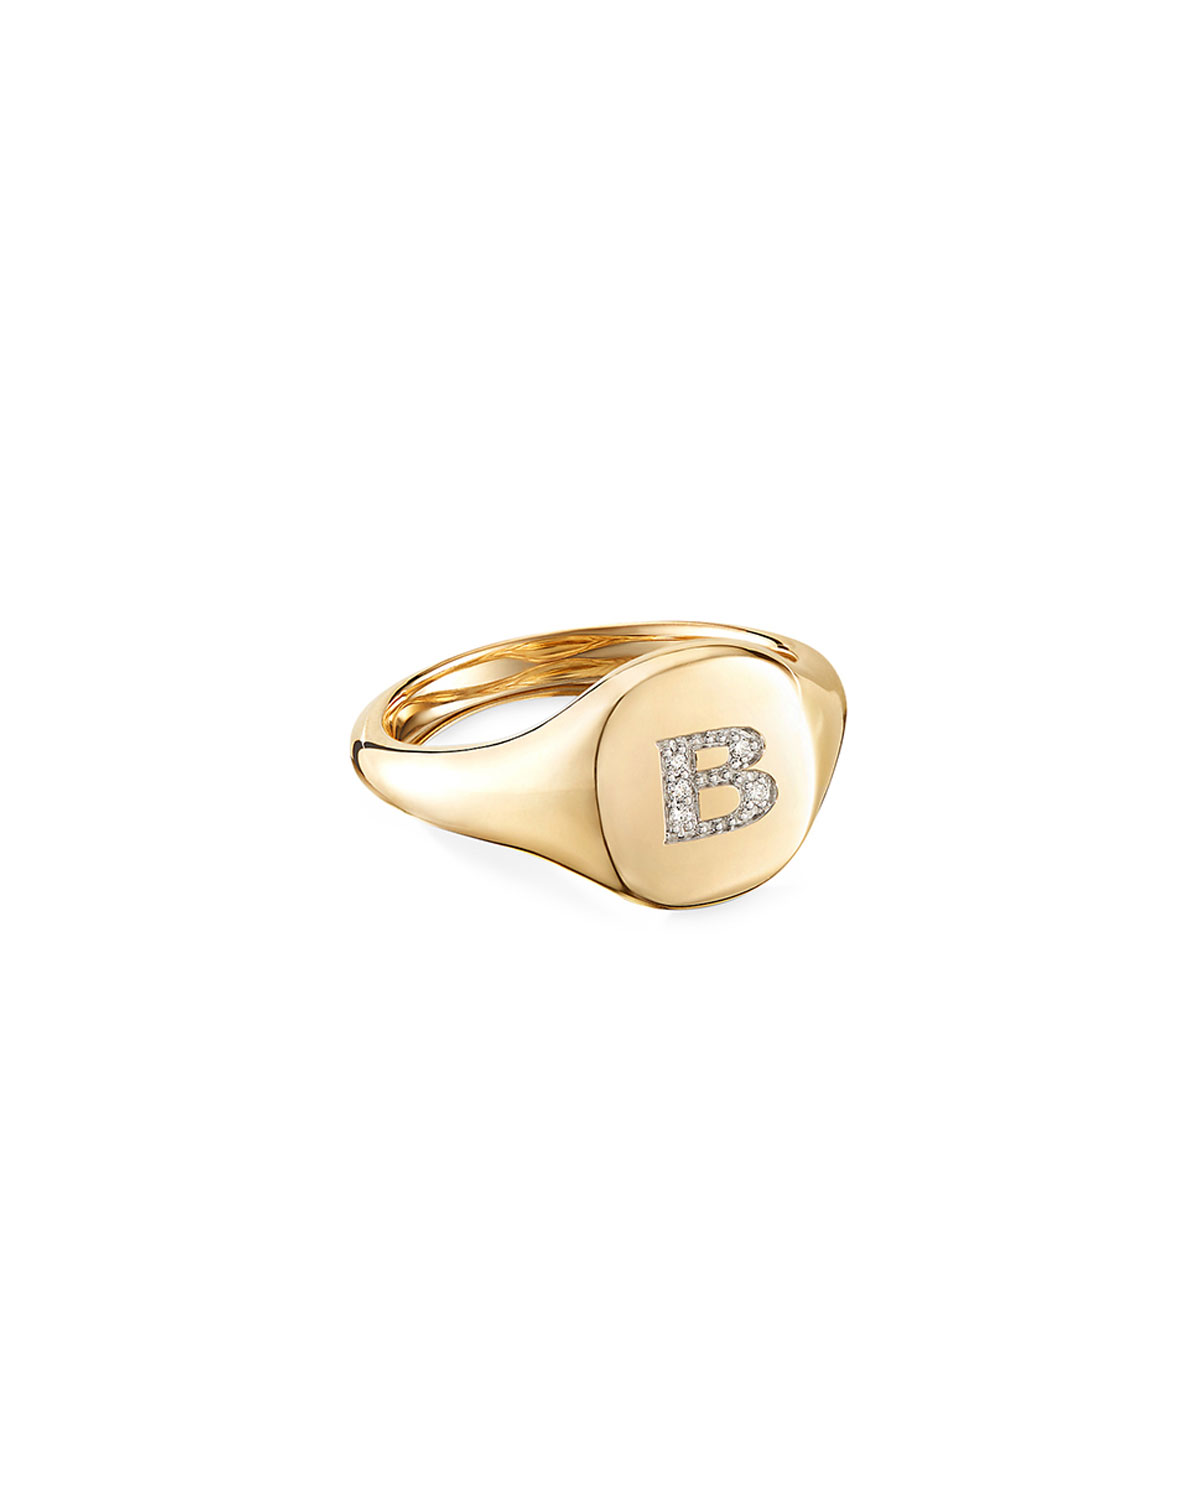 David Yurman Mini DY Initial B Pinky Ring in 18K Yellow Gold with Diamonds, Size 4.5